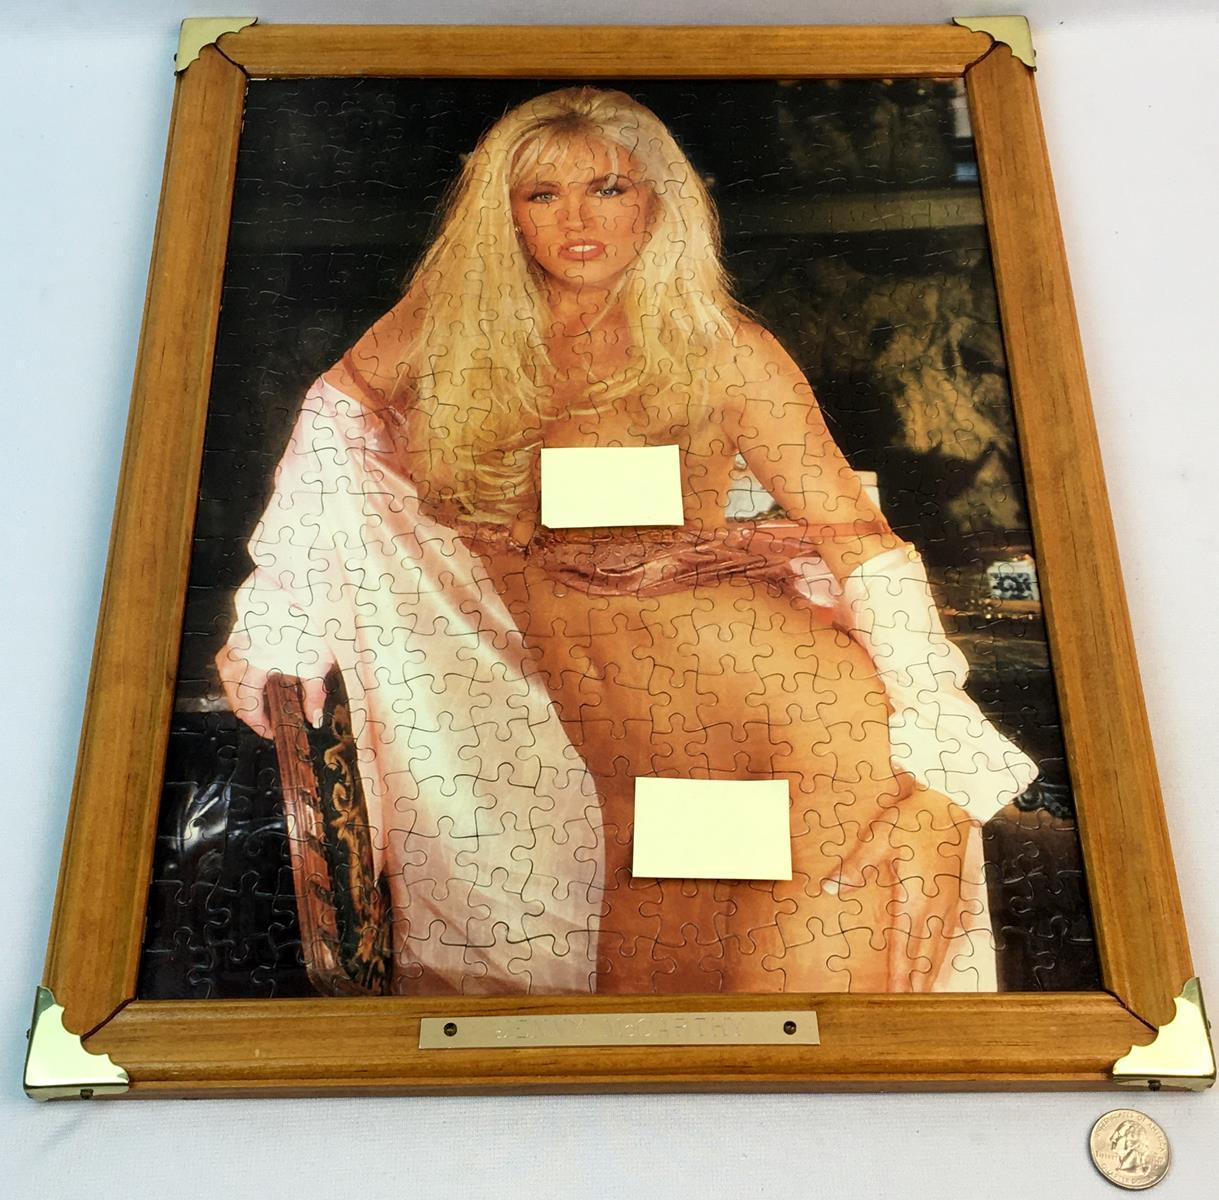 Lot - Vintage Jenny McCarthy Playboy Puzzle COMPLETED & FRAMED